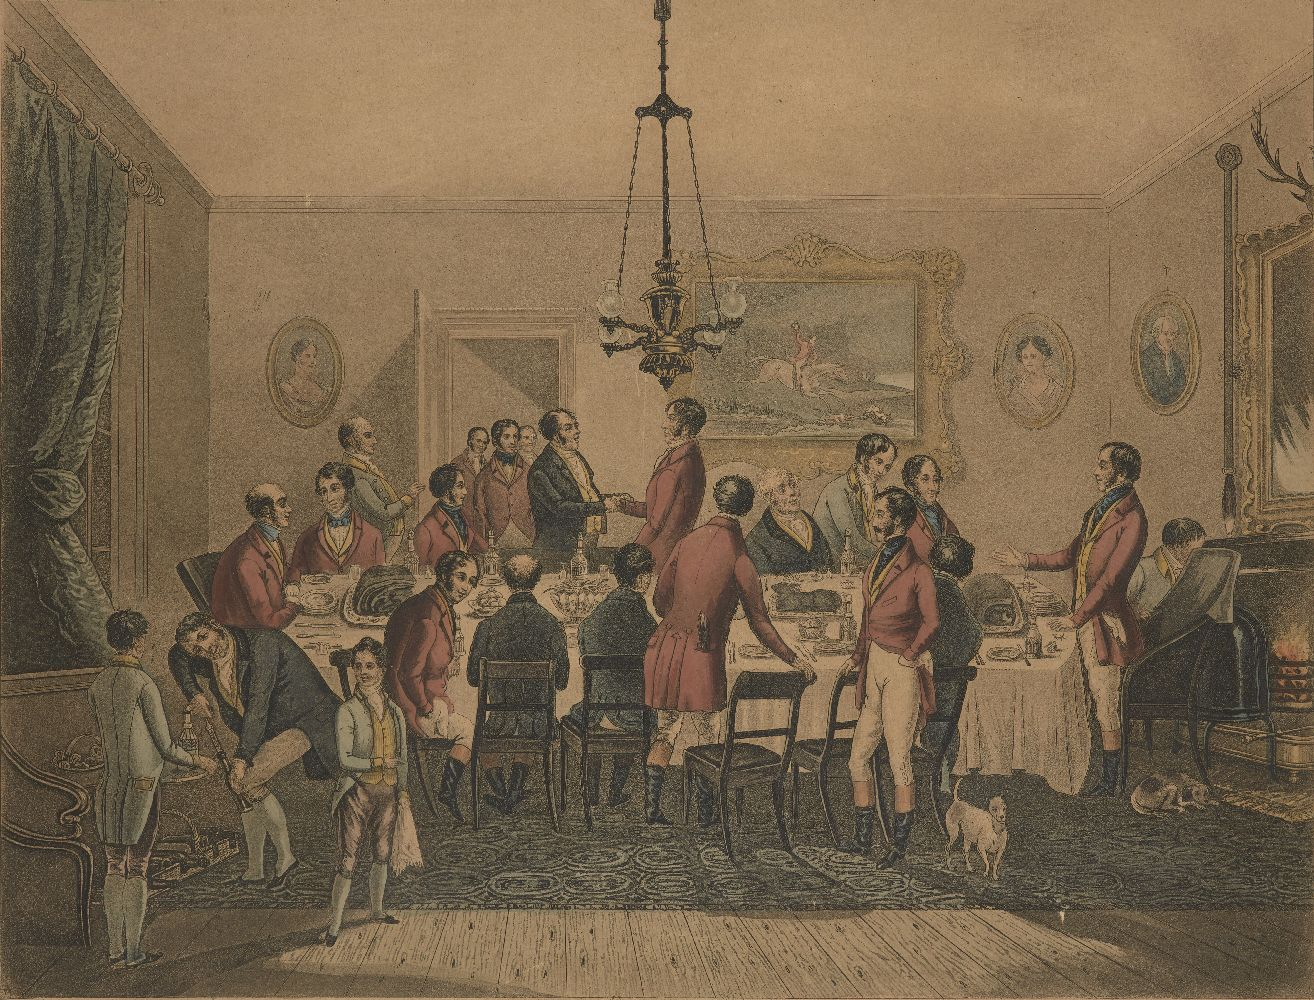 After Francis Calcraft Turner, British, c.1782-1846- Bachelor's Hall series; hand-coloured - Image 3 of 6